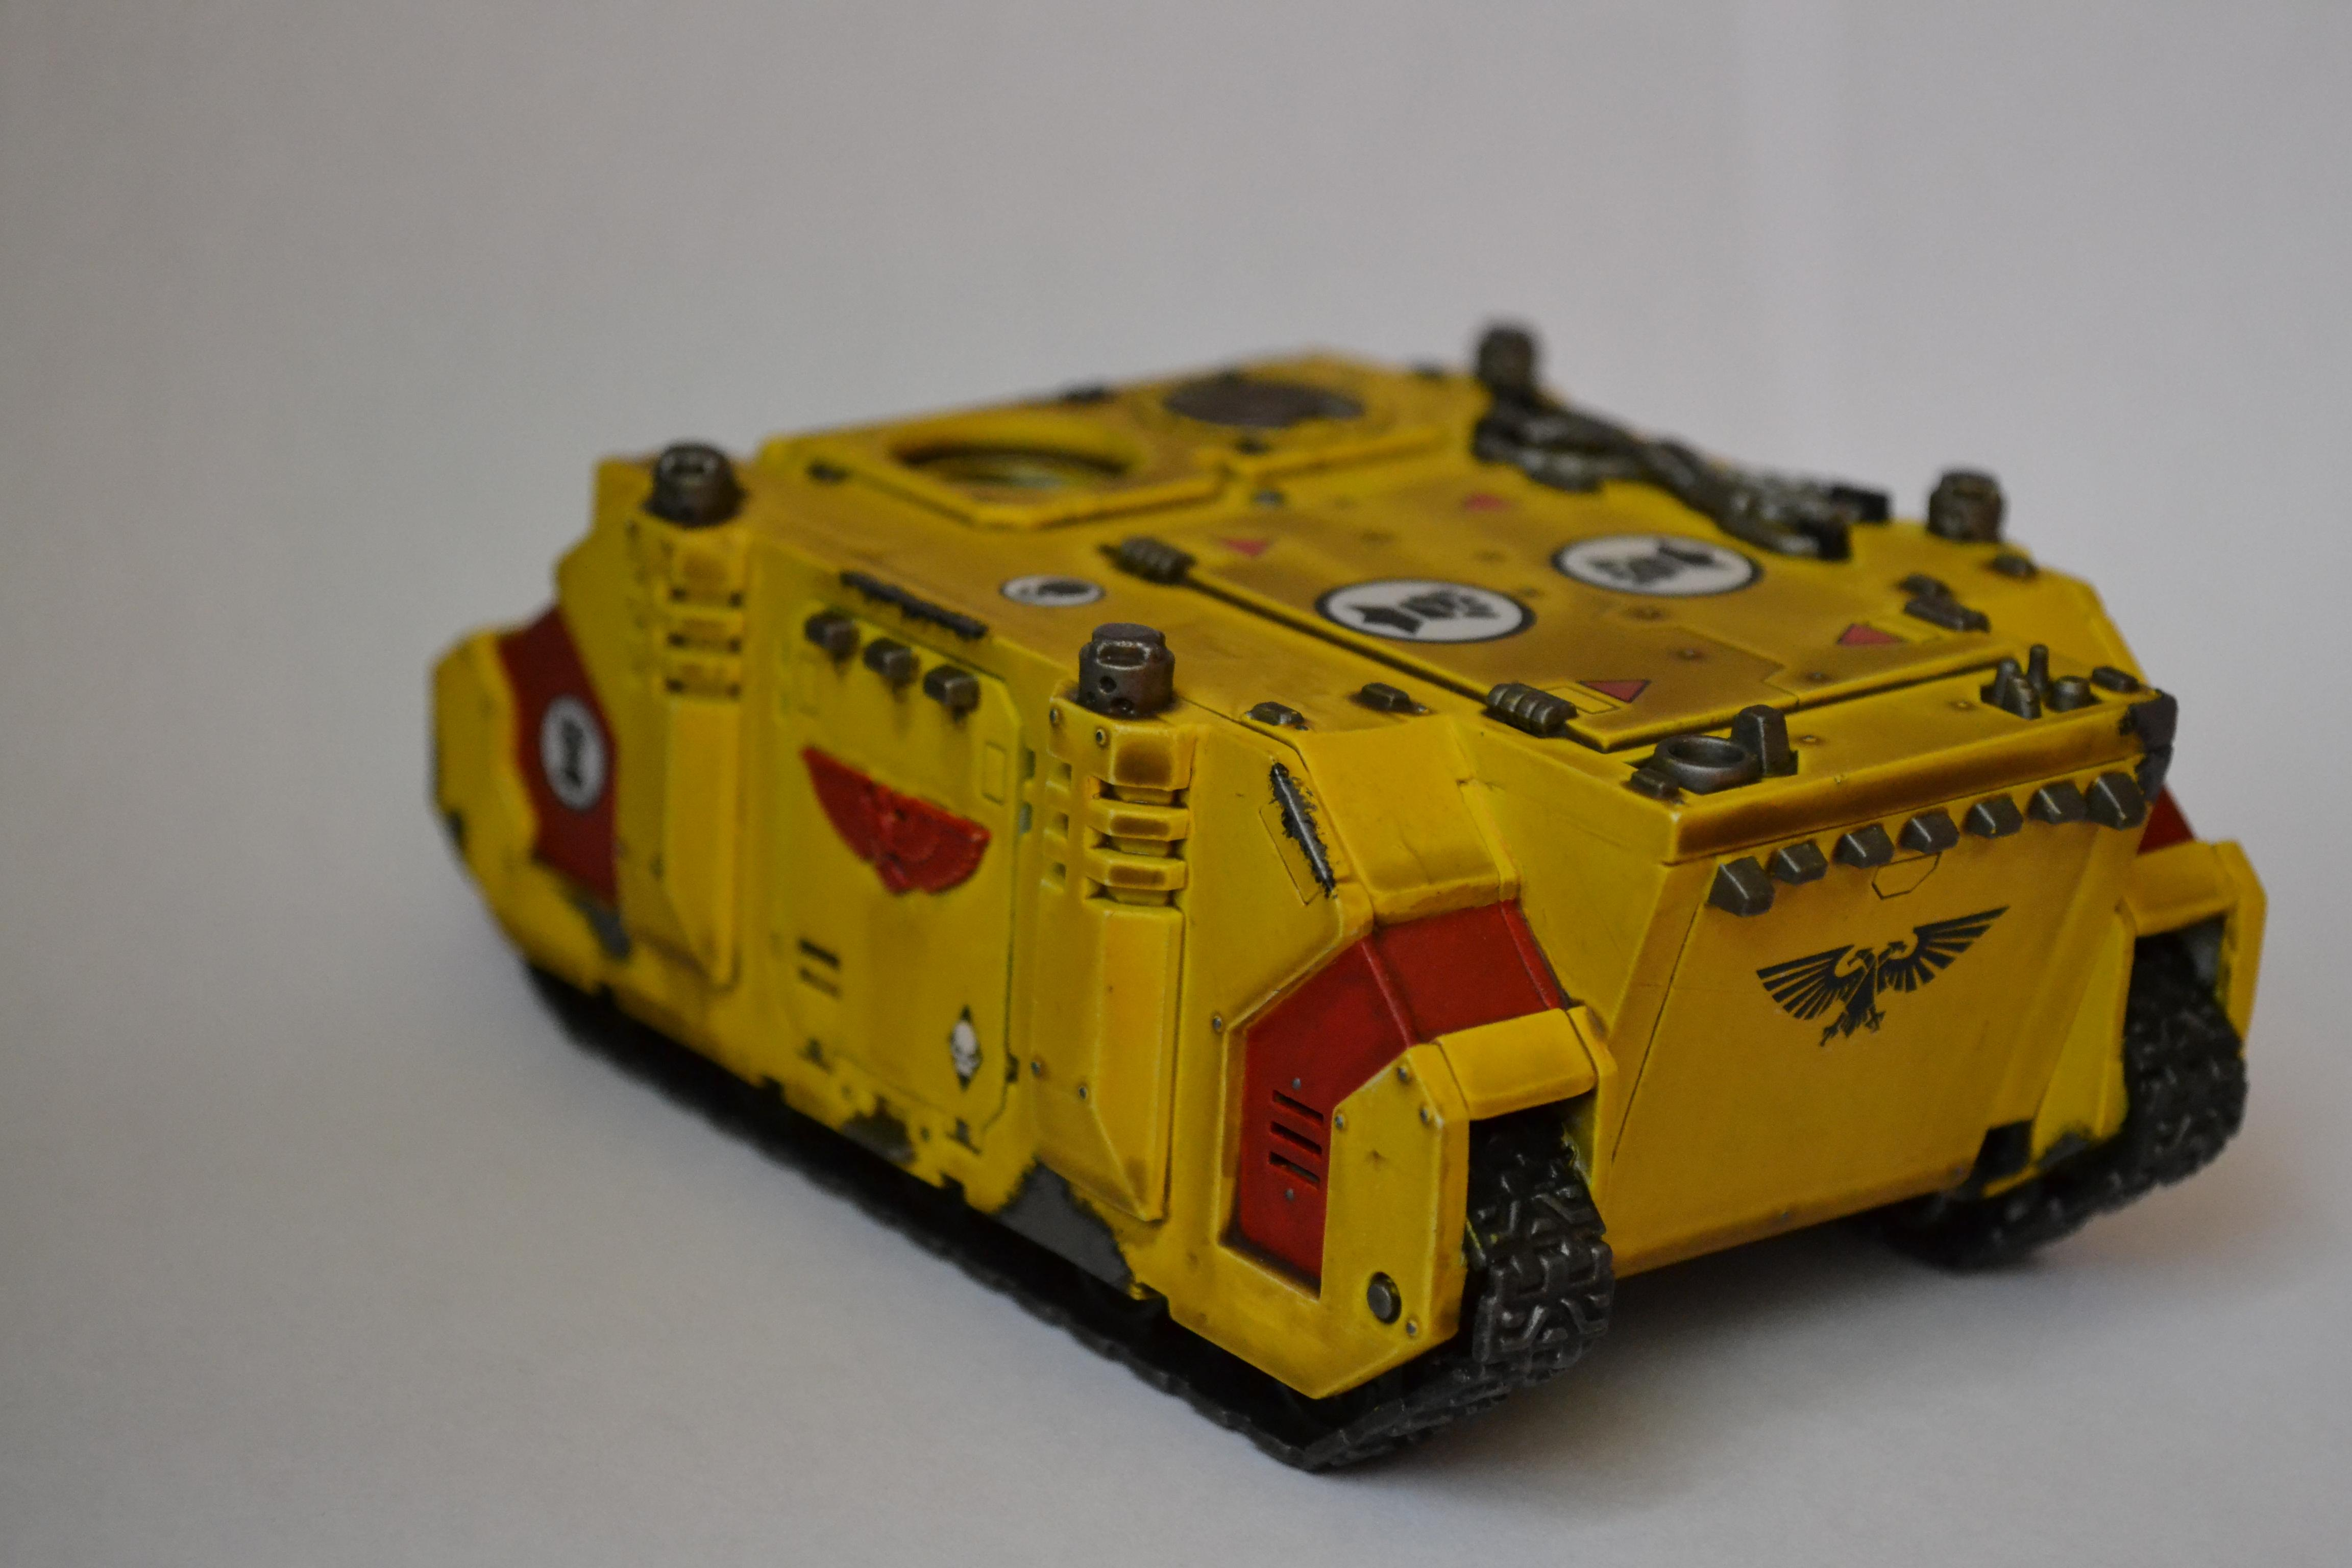 Imperial Fists, Rhino, Space Marines, Vehicle, Warhammer 40,000